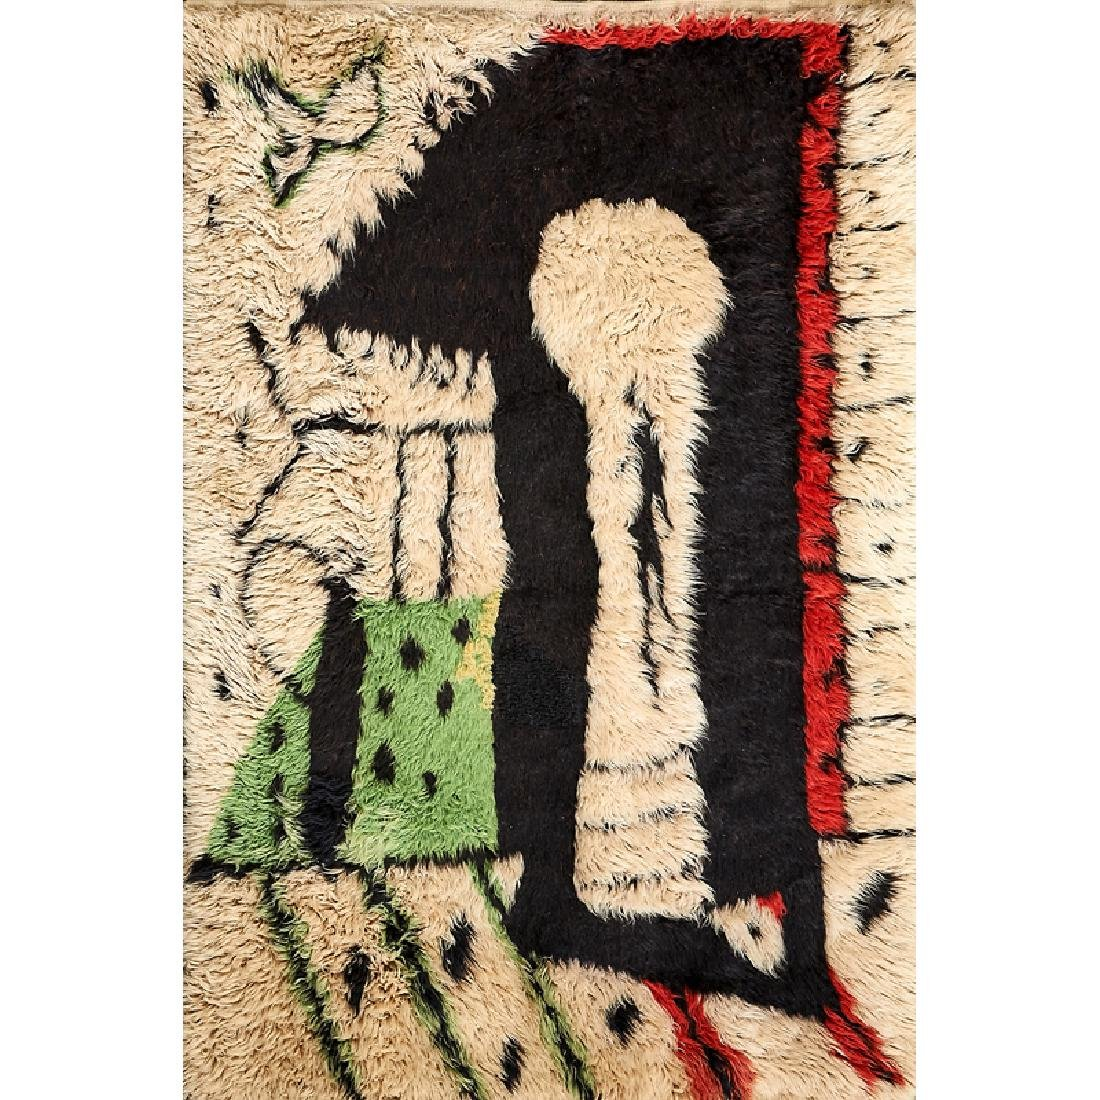 AFTER PABLO PICASSO Wall-hanging tapestry